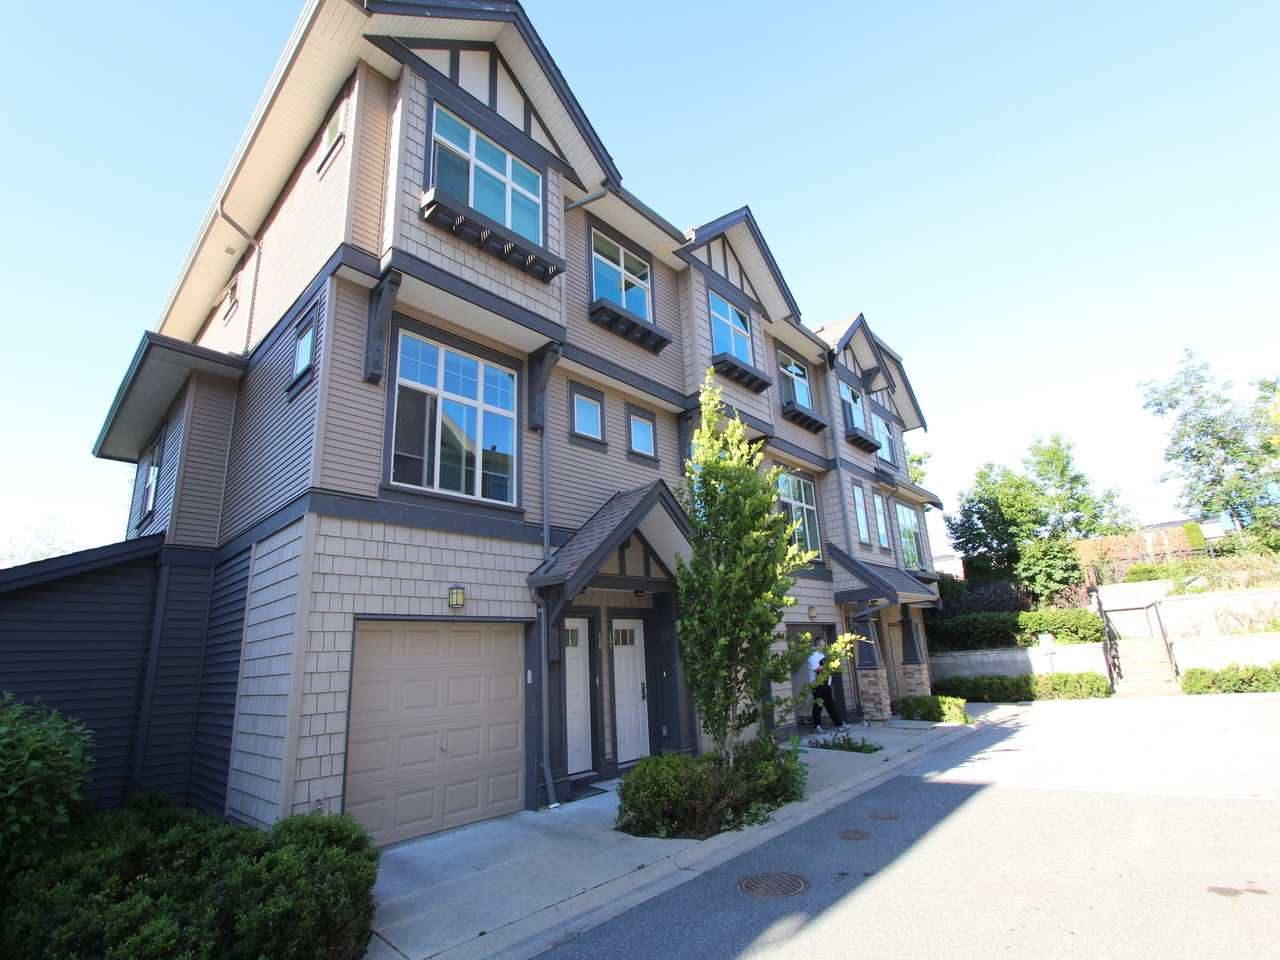 Main Photo: 17 31125 WESTRIDGE Place in Abbotsford: Abbotsford West Townhouse for sale : MLS® # R2194447